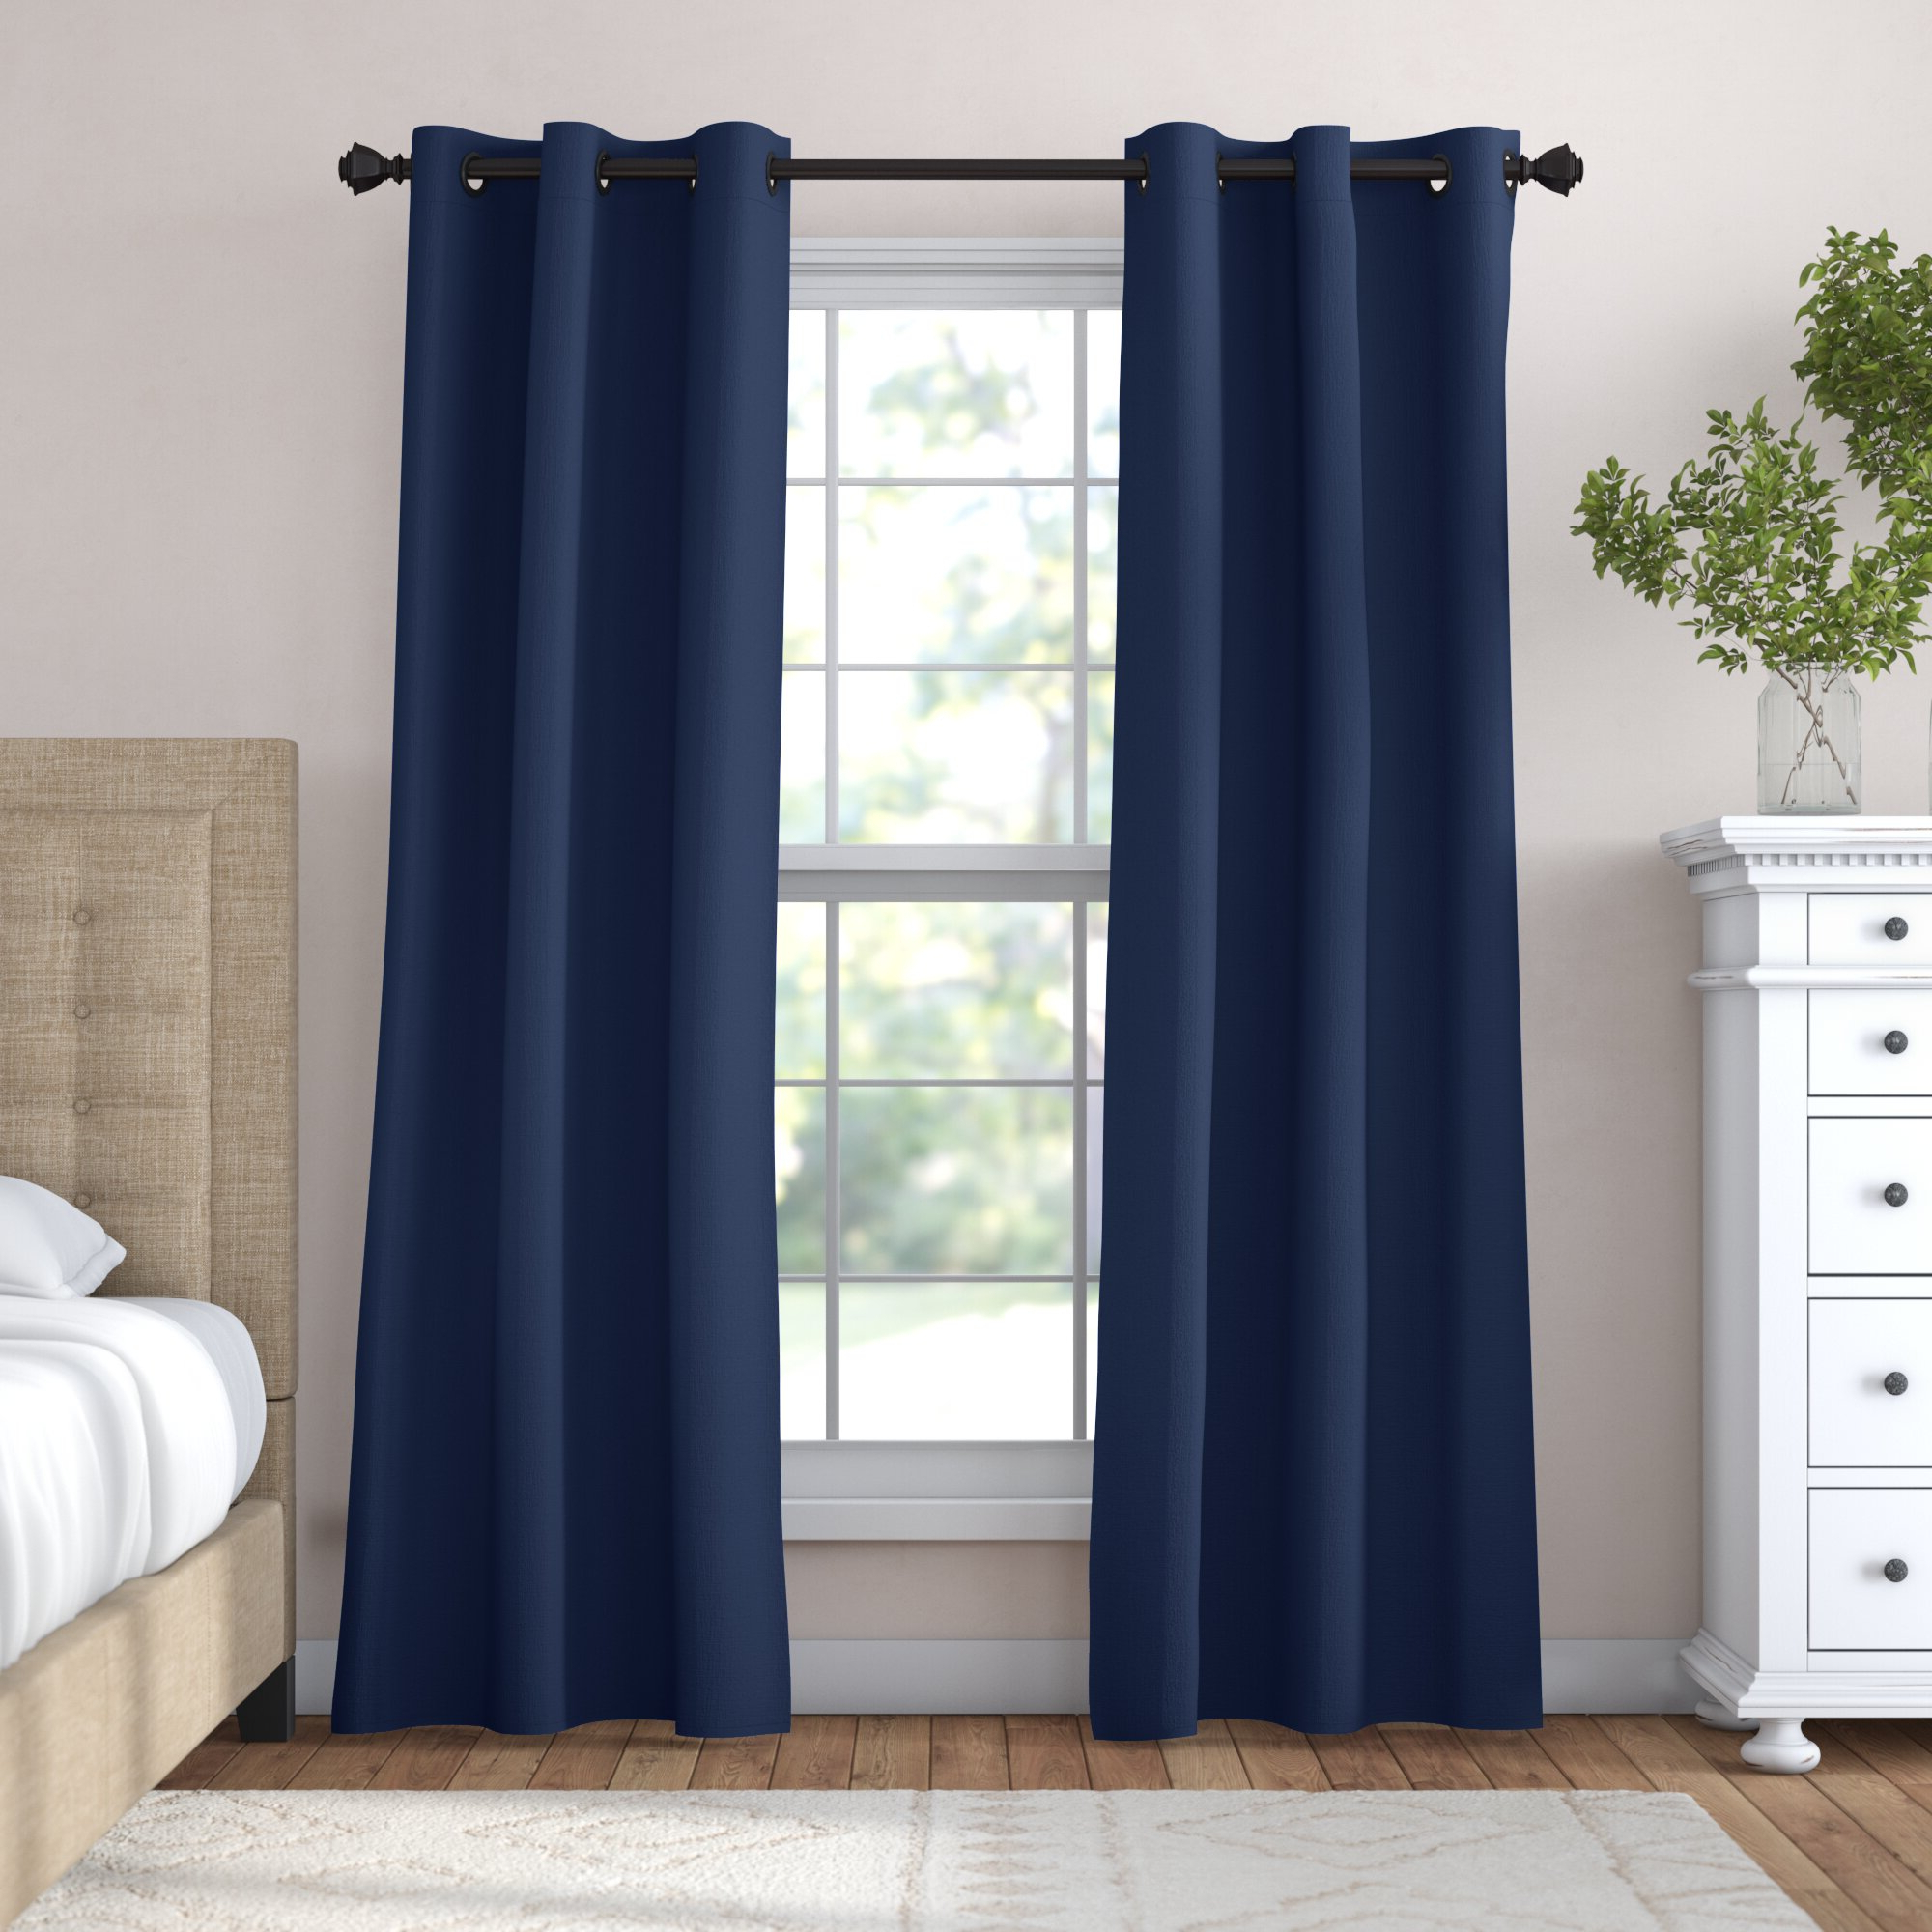 Candler Absolute Solid Max Blackout Grommet Curtain Panels For Fashionable Riley Kids Bedroom Blackout Grommet Curtain Panels (View 14 of 20)